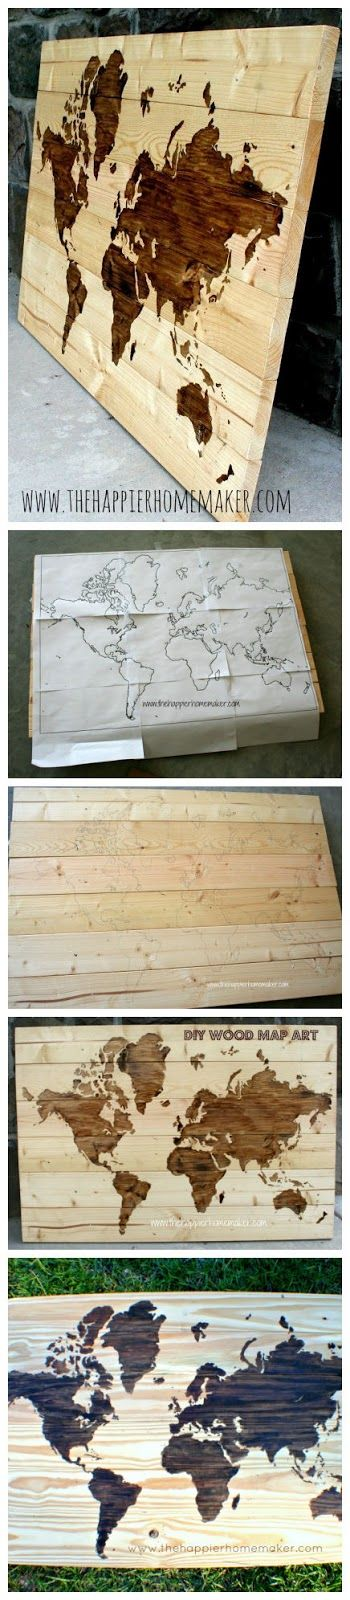 DIY Wooden World Map Art  Yes this  Dark stain outside, leave land mass original wood color